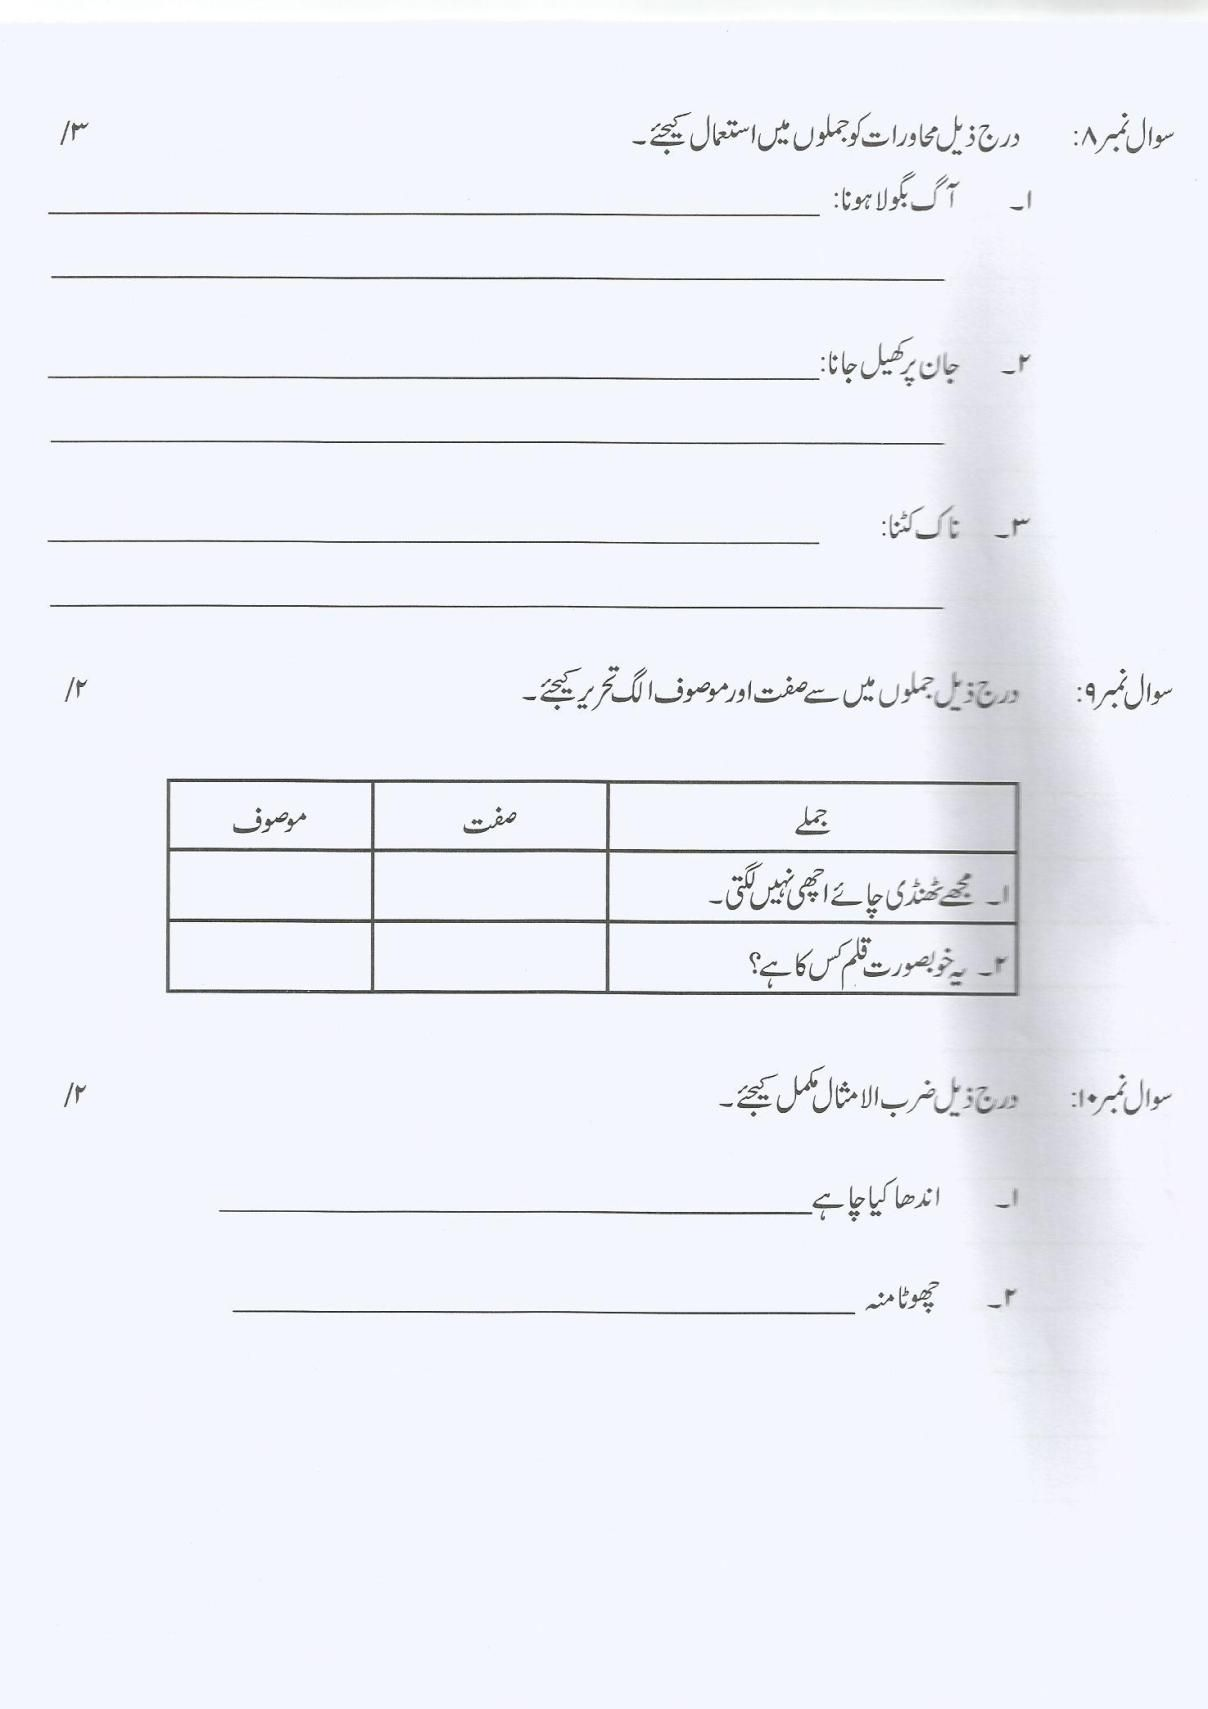 hight resolution of Urdu Tenses Worksheet For Grade 6   Printable Worksheets and Activities for  Teachers